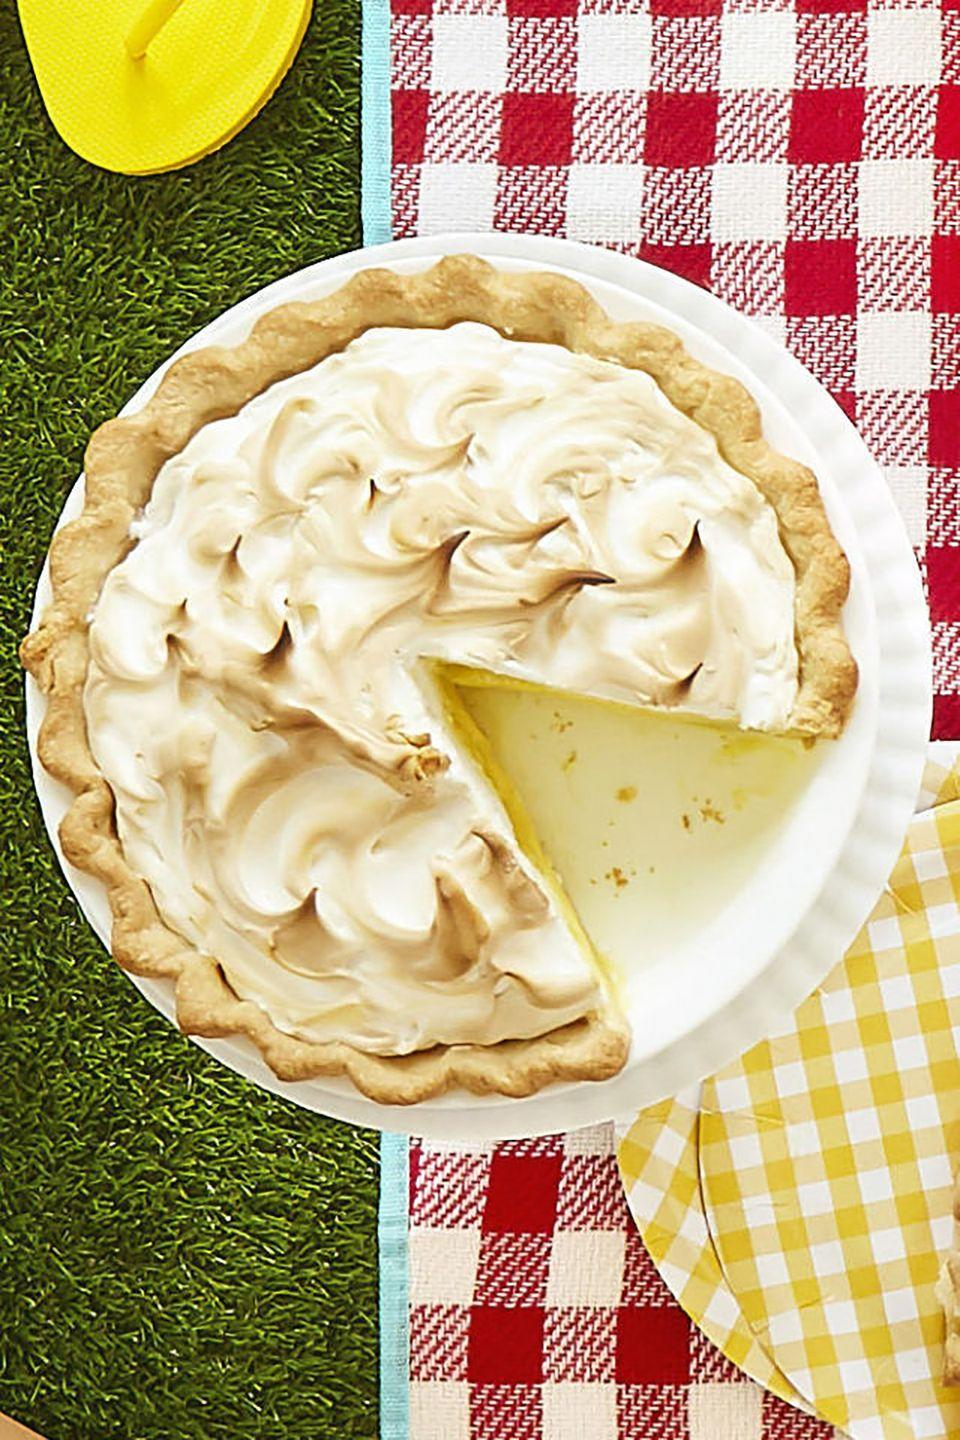 """<p><span class=""""redactor-unlink"""">Don't leave pie off your Memorial Day menu. This fluffy lemon meringue is a classic crowd-pleaser.</span></p><p><strong><a href=""""https://www.countryliving.com/food-drinks/recipes/a42431/meyer-lemon-meringue-pie/"""" rel=""""nofollow noopener"""" target=""""_blank"""" data-ylk=""""slk:Get the recipe"""" class=""""link rapid-noclick-resp"""">Get the recipe</a>.</strong><br></p>"""